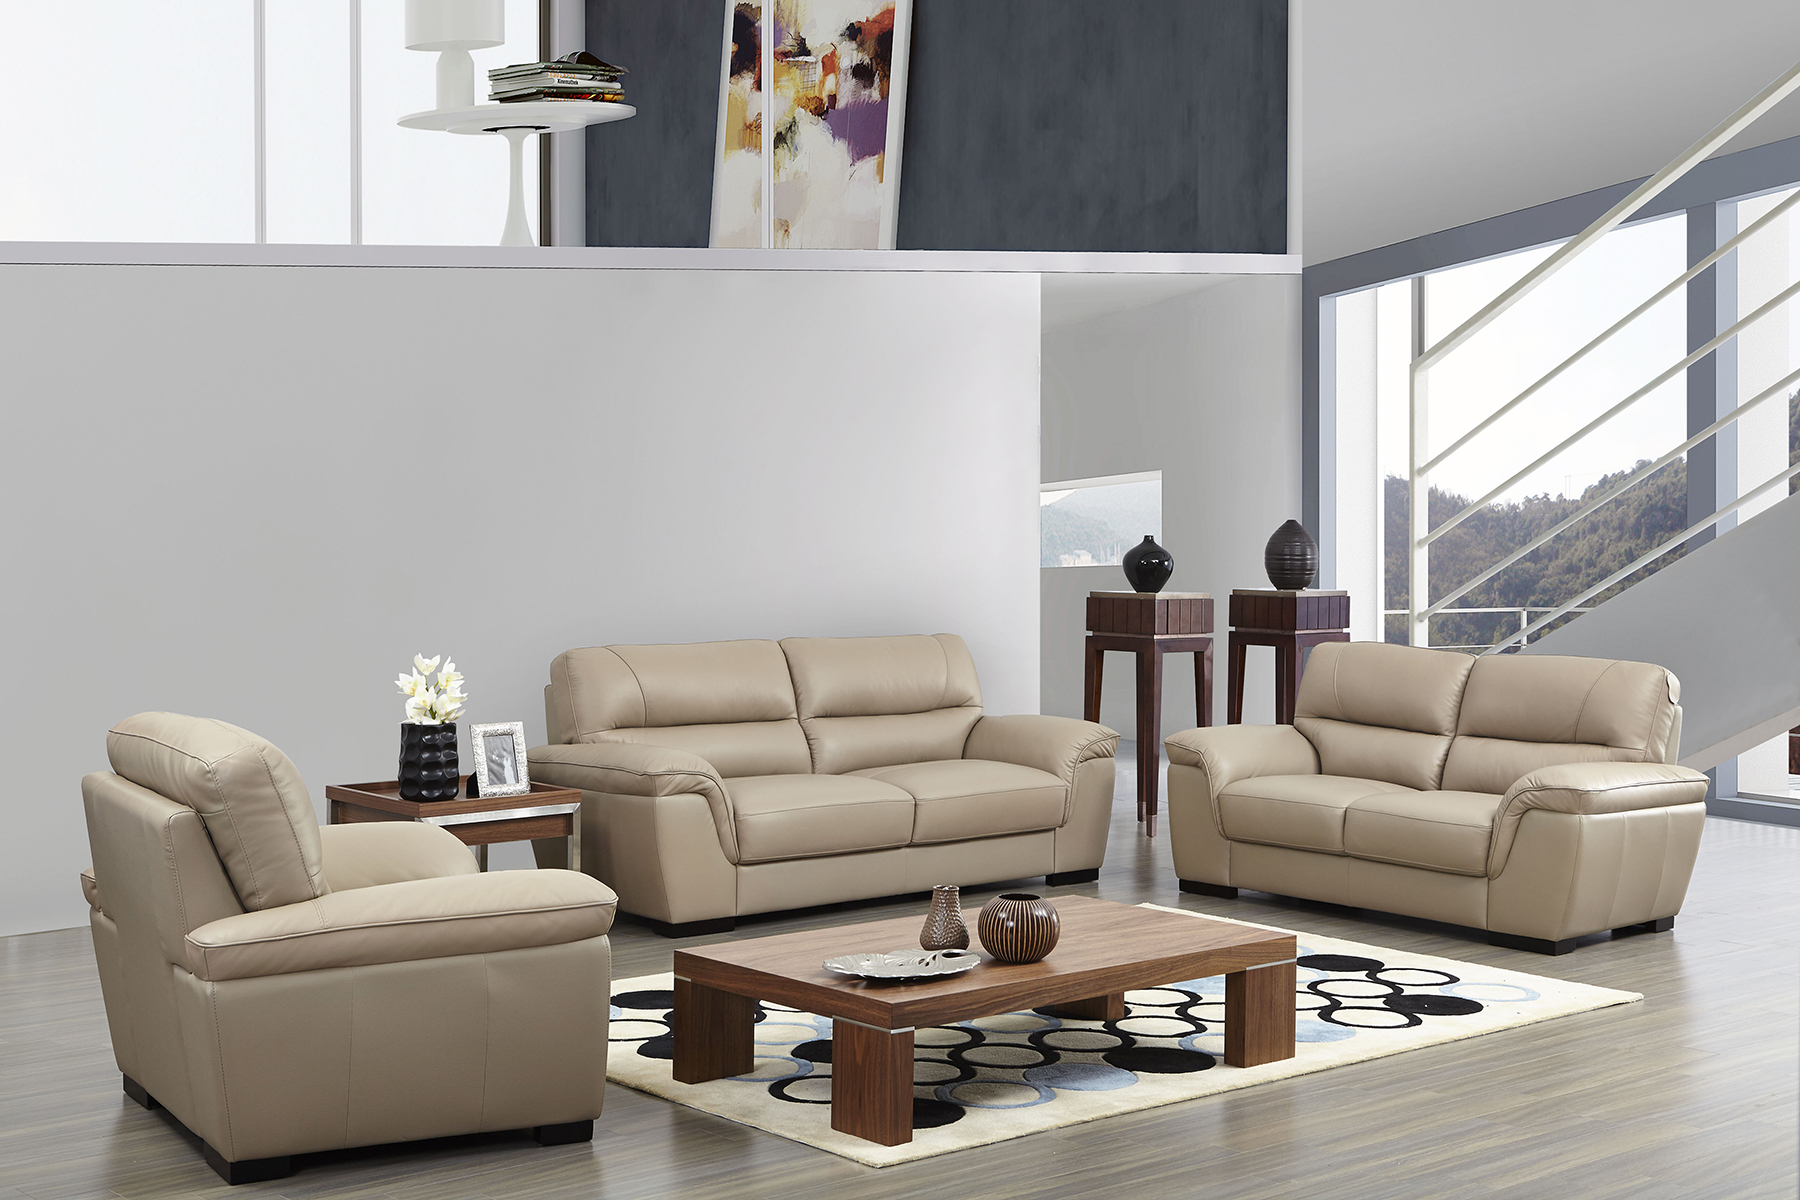 Contemporary Beige Leather Stylish Sofa Set with Wooden Legs San Jose